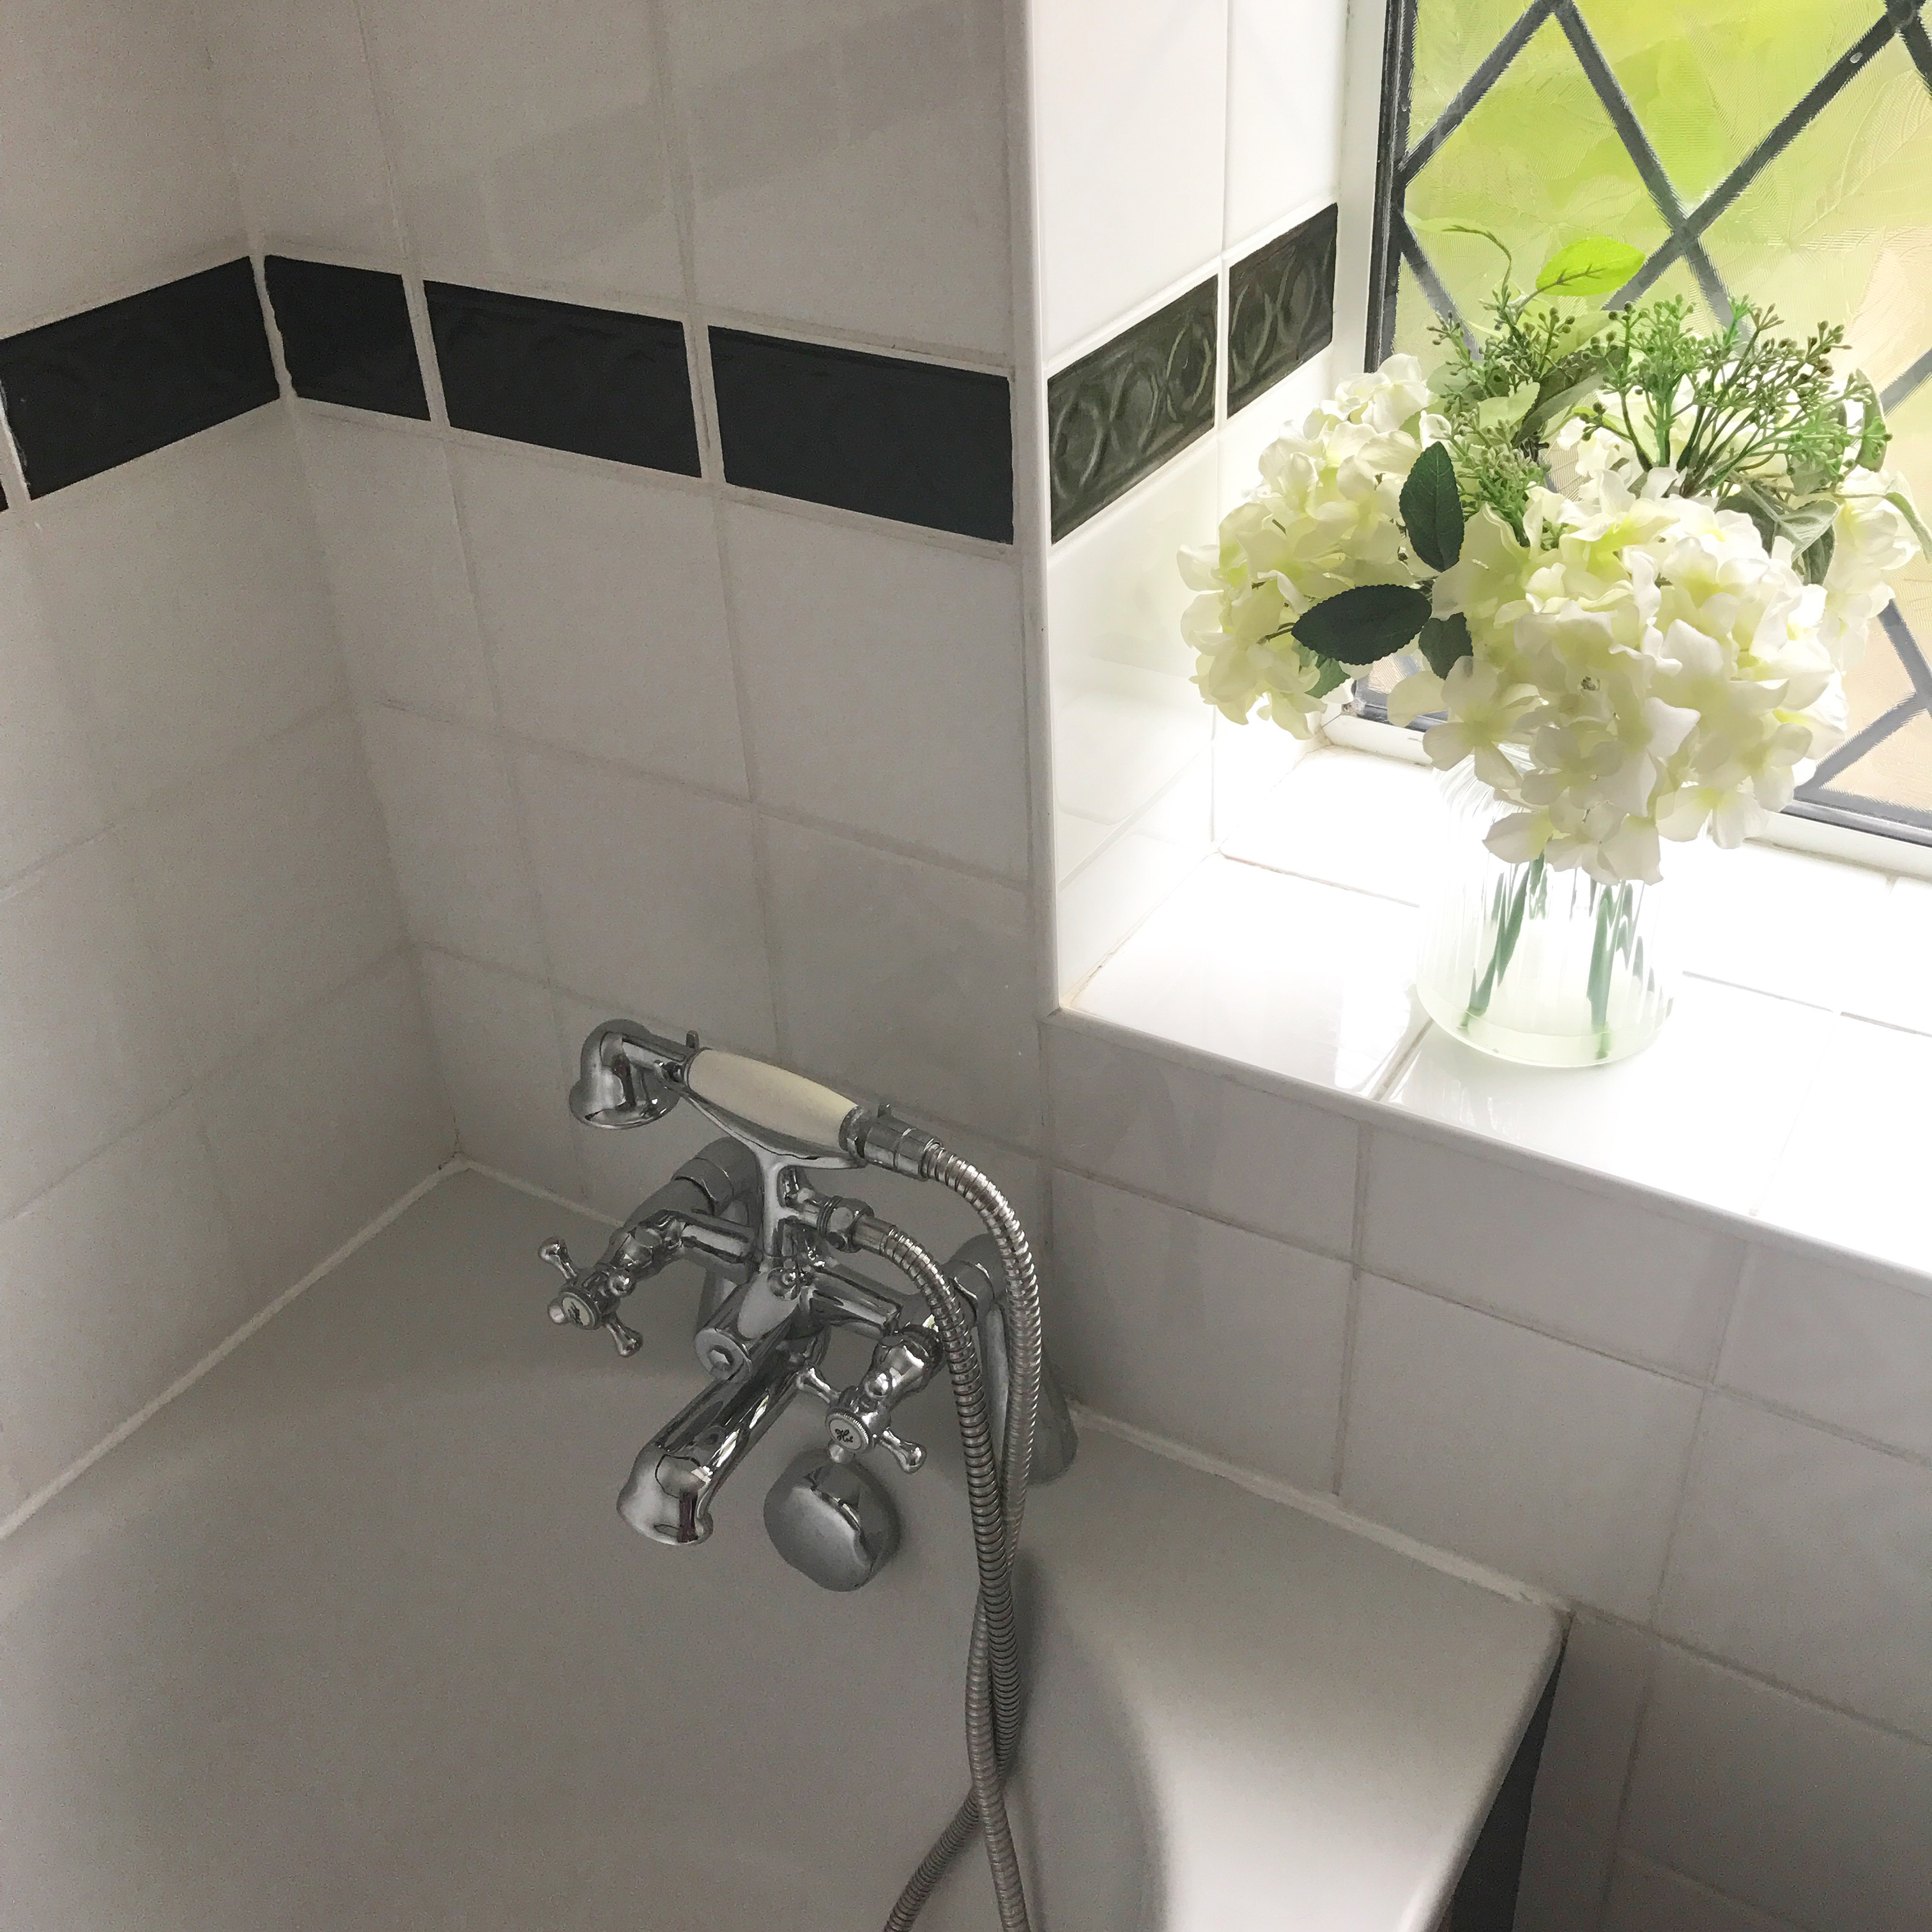 Diy Tips Painting Ceramic Tiles For A Bathroom Update